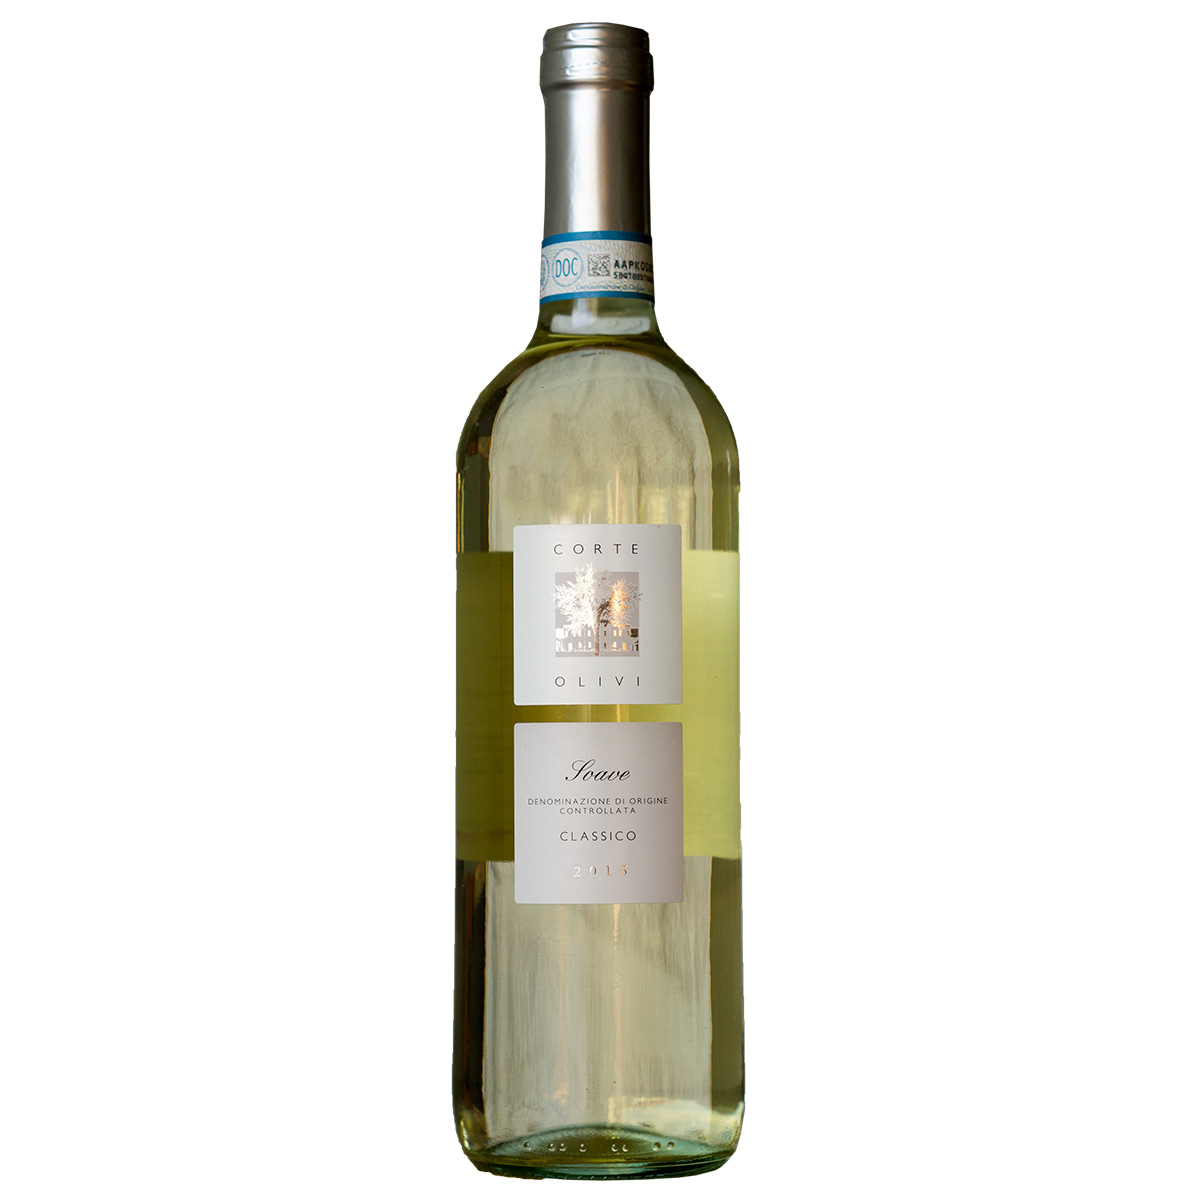 Weisswein Italien Soave Classico